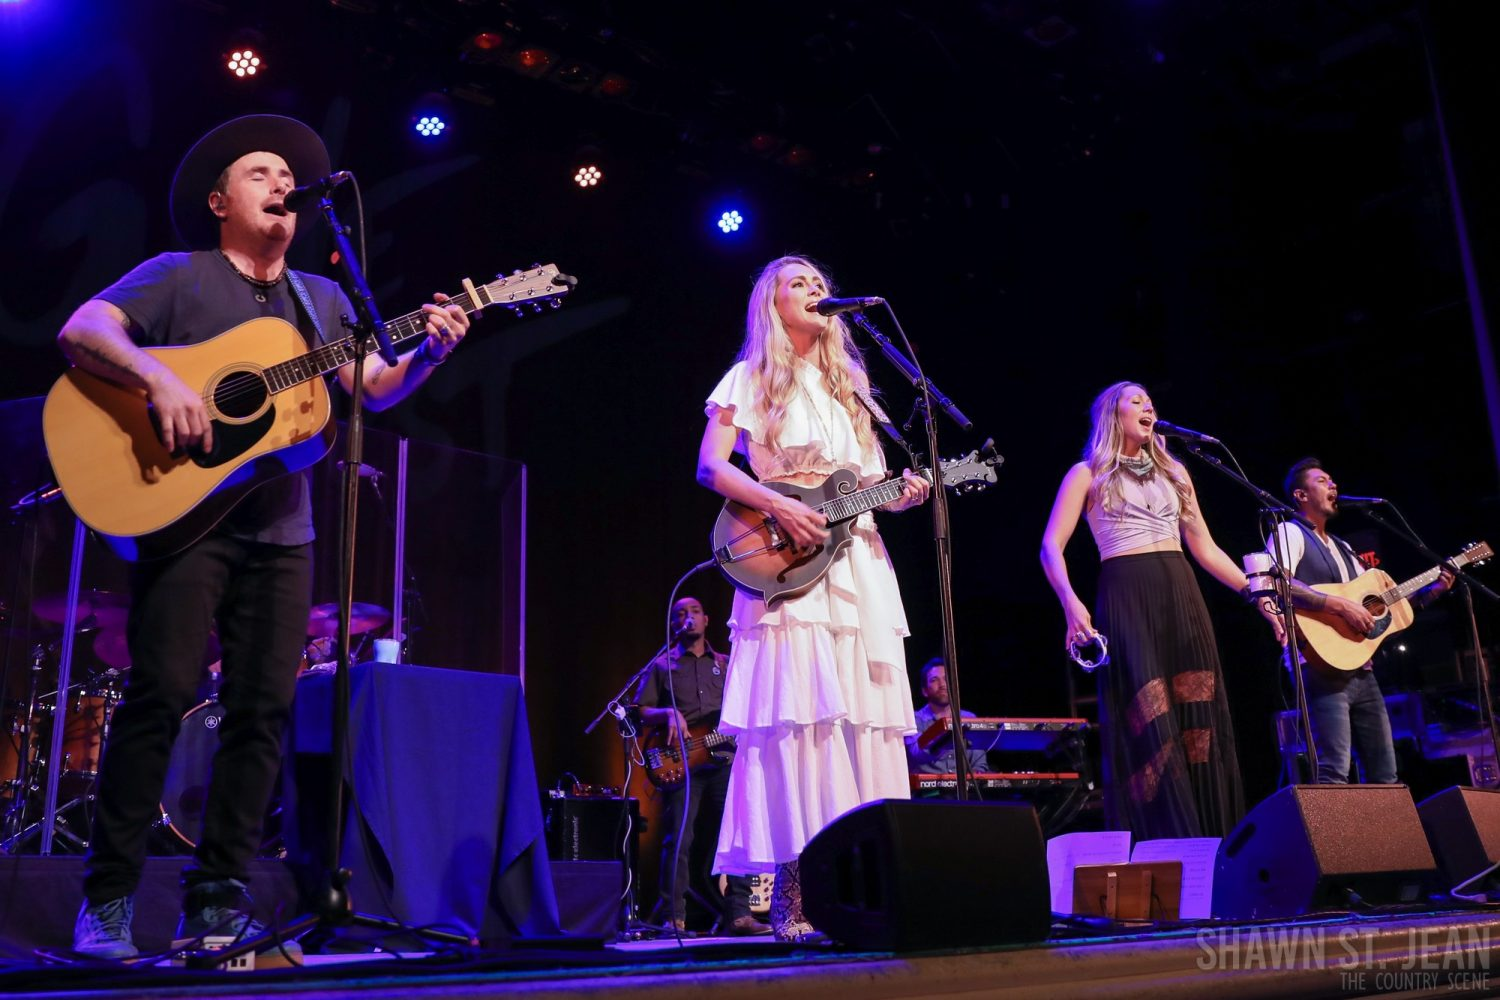 Gone West at the Ridgefield Playhouse, July 5, 2019 / Photo by Shawn St. Jean